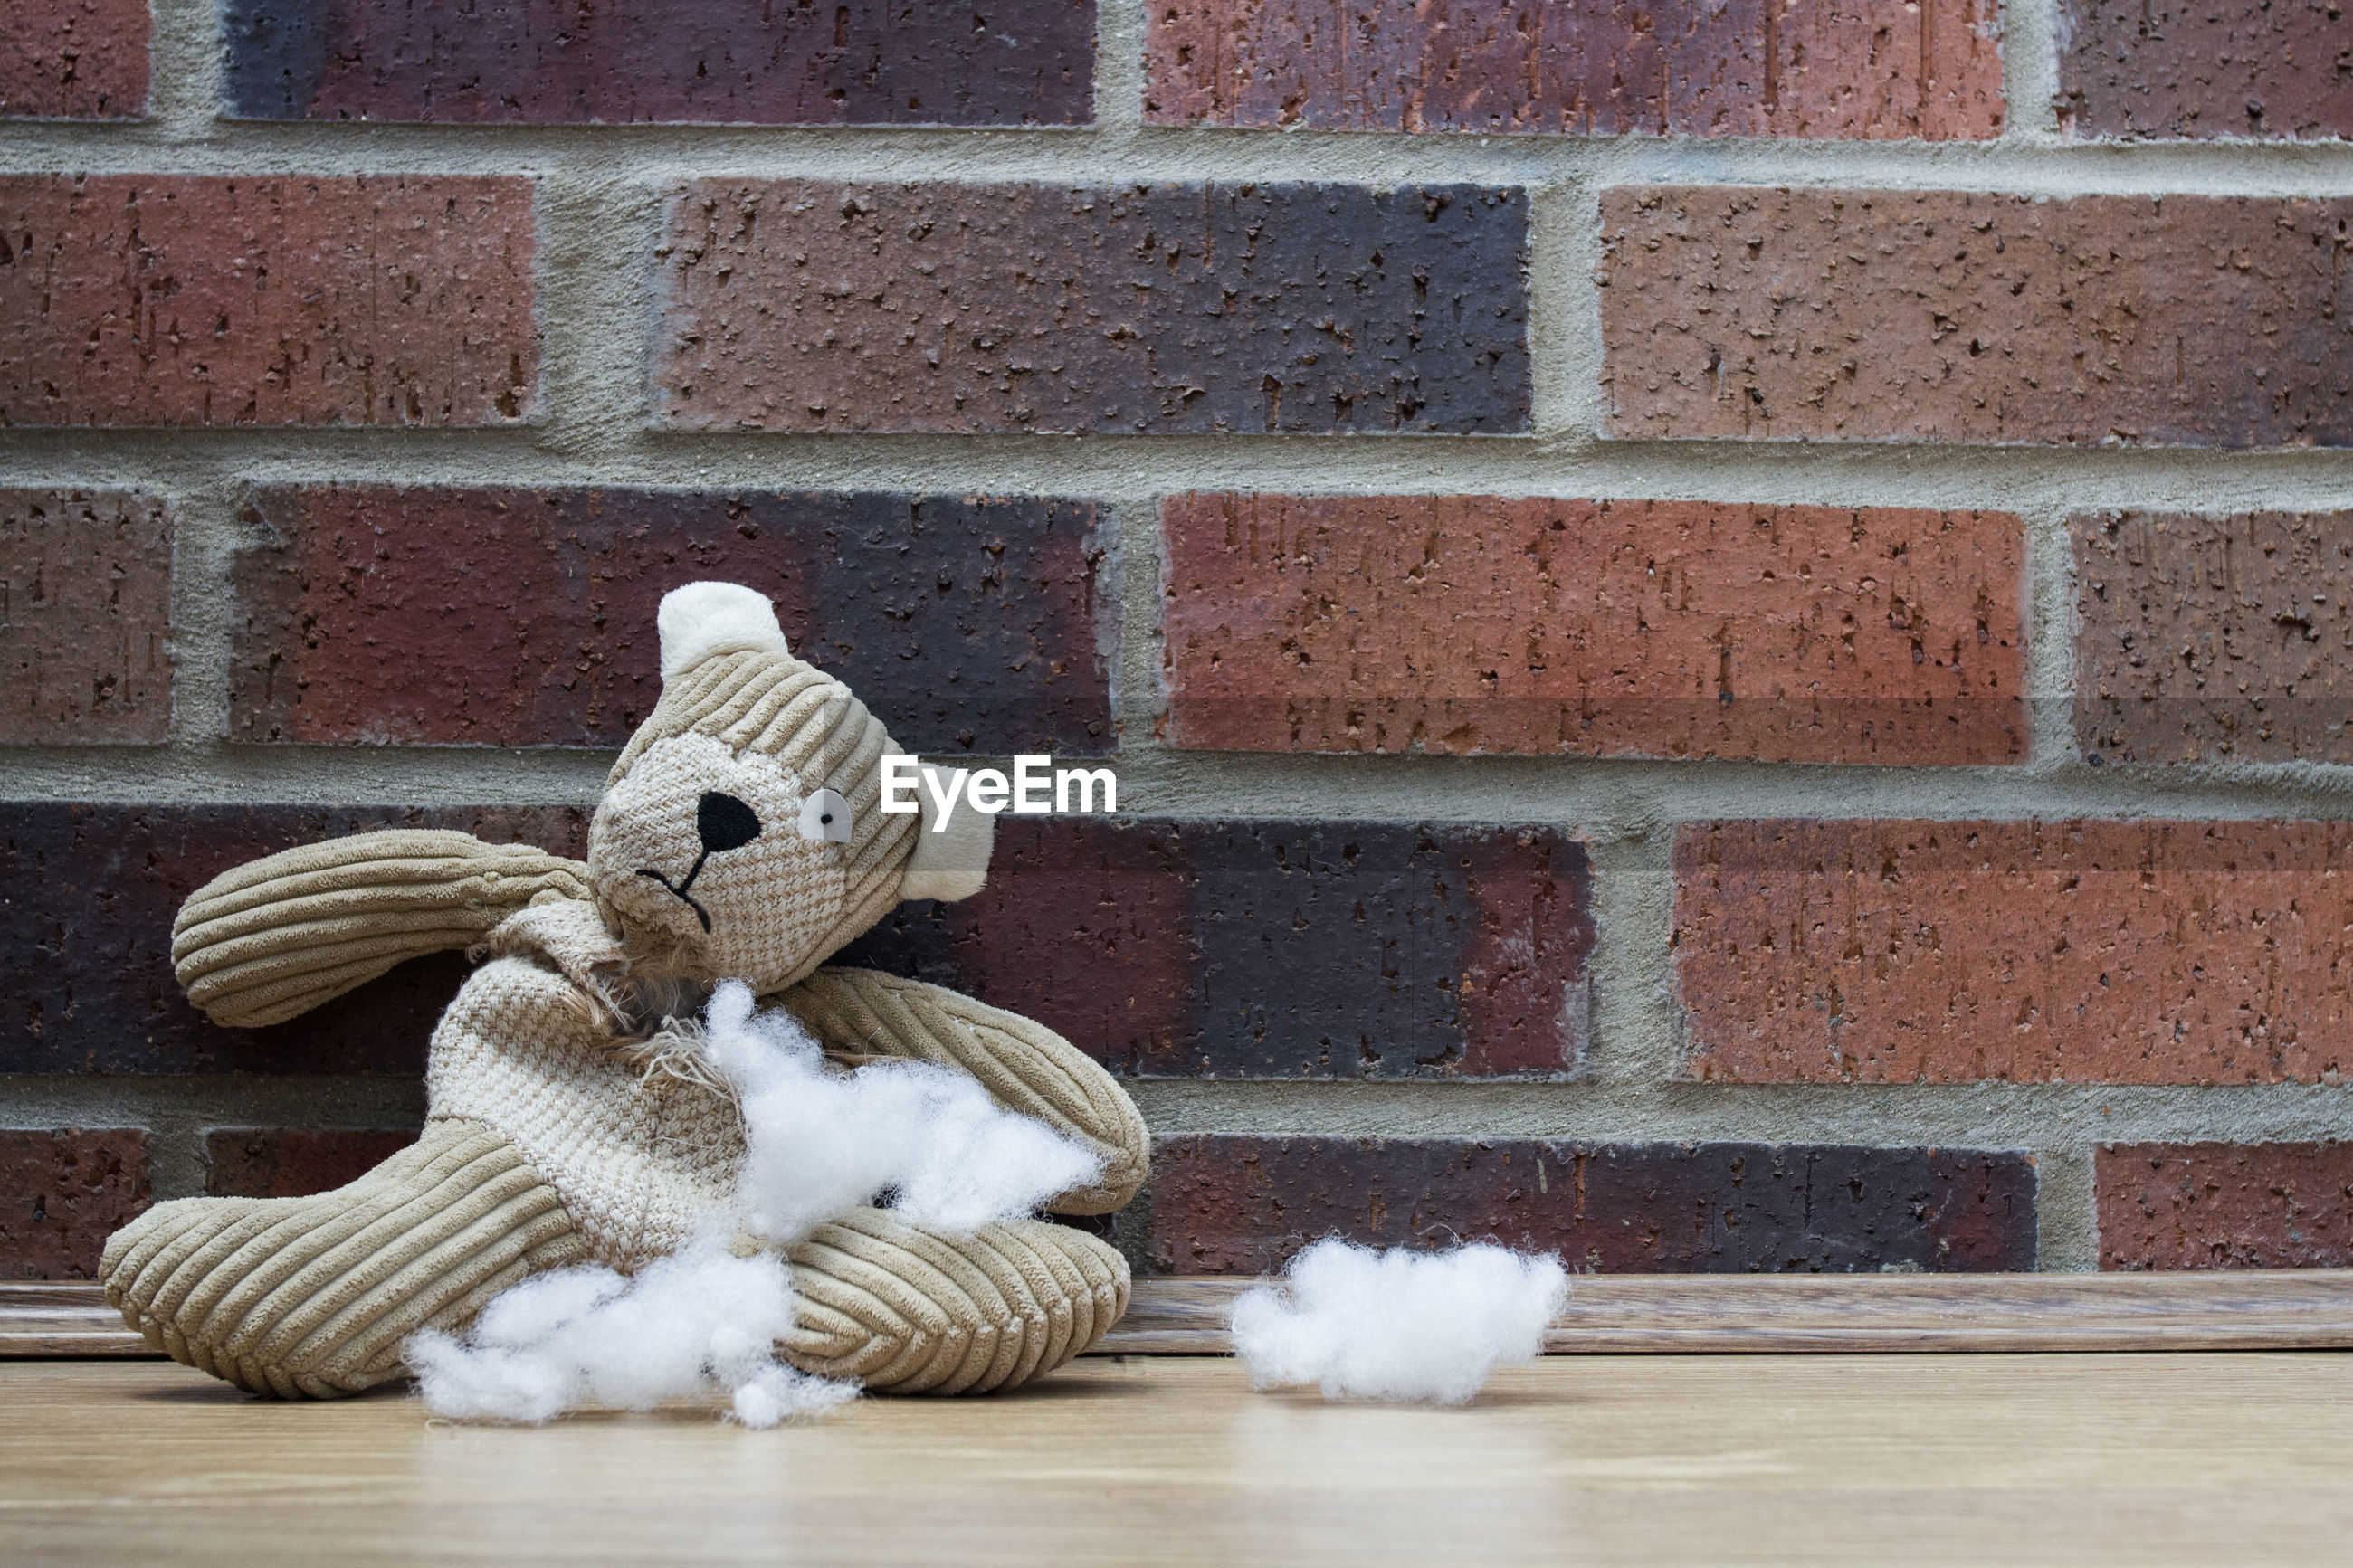 Close-up of torn stuffed toy on wooden table by brick wall